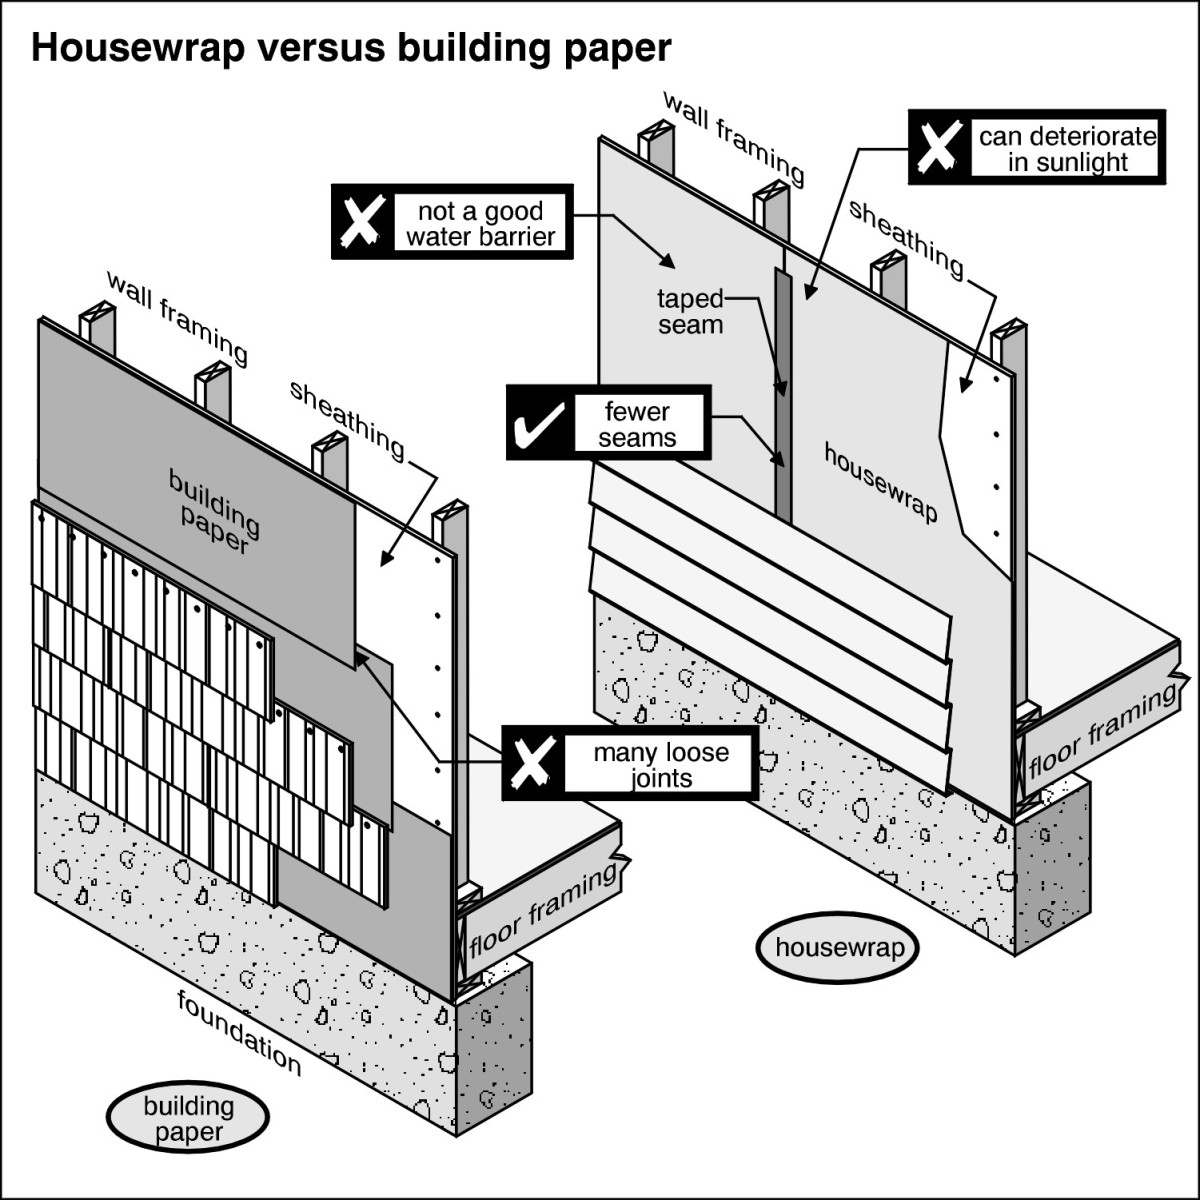 building paper vs house wrap which one is better dengarden Barricade House Wrap house wrap which one is better dengarden